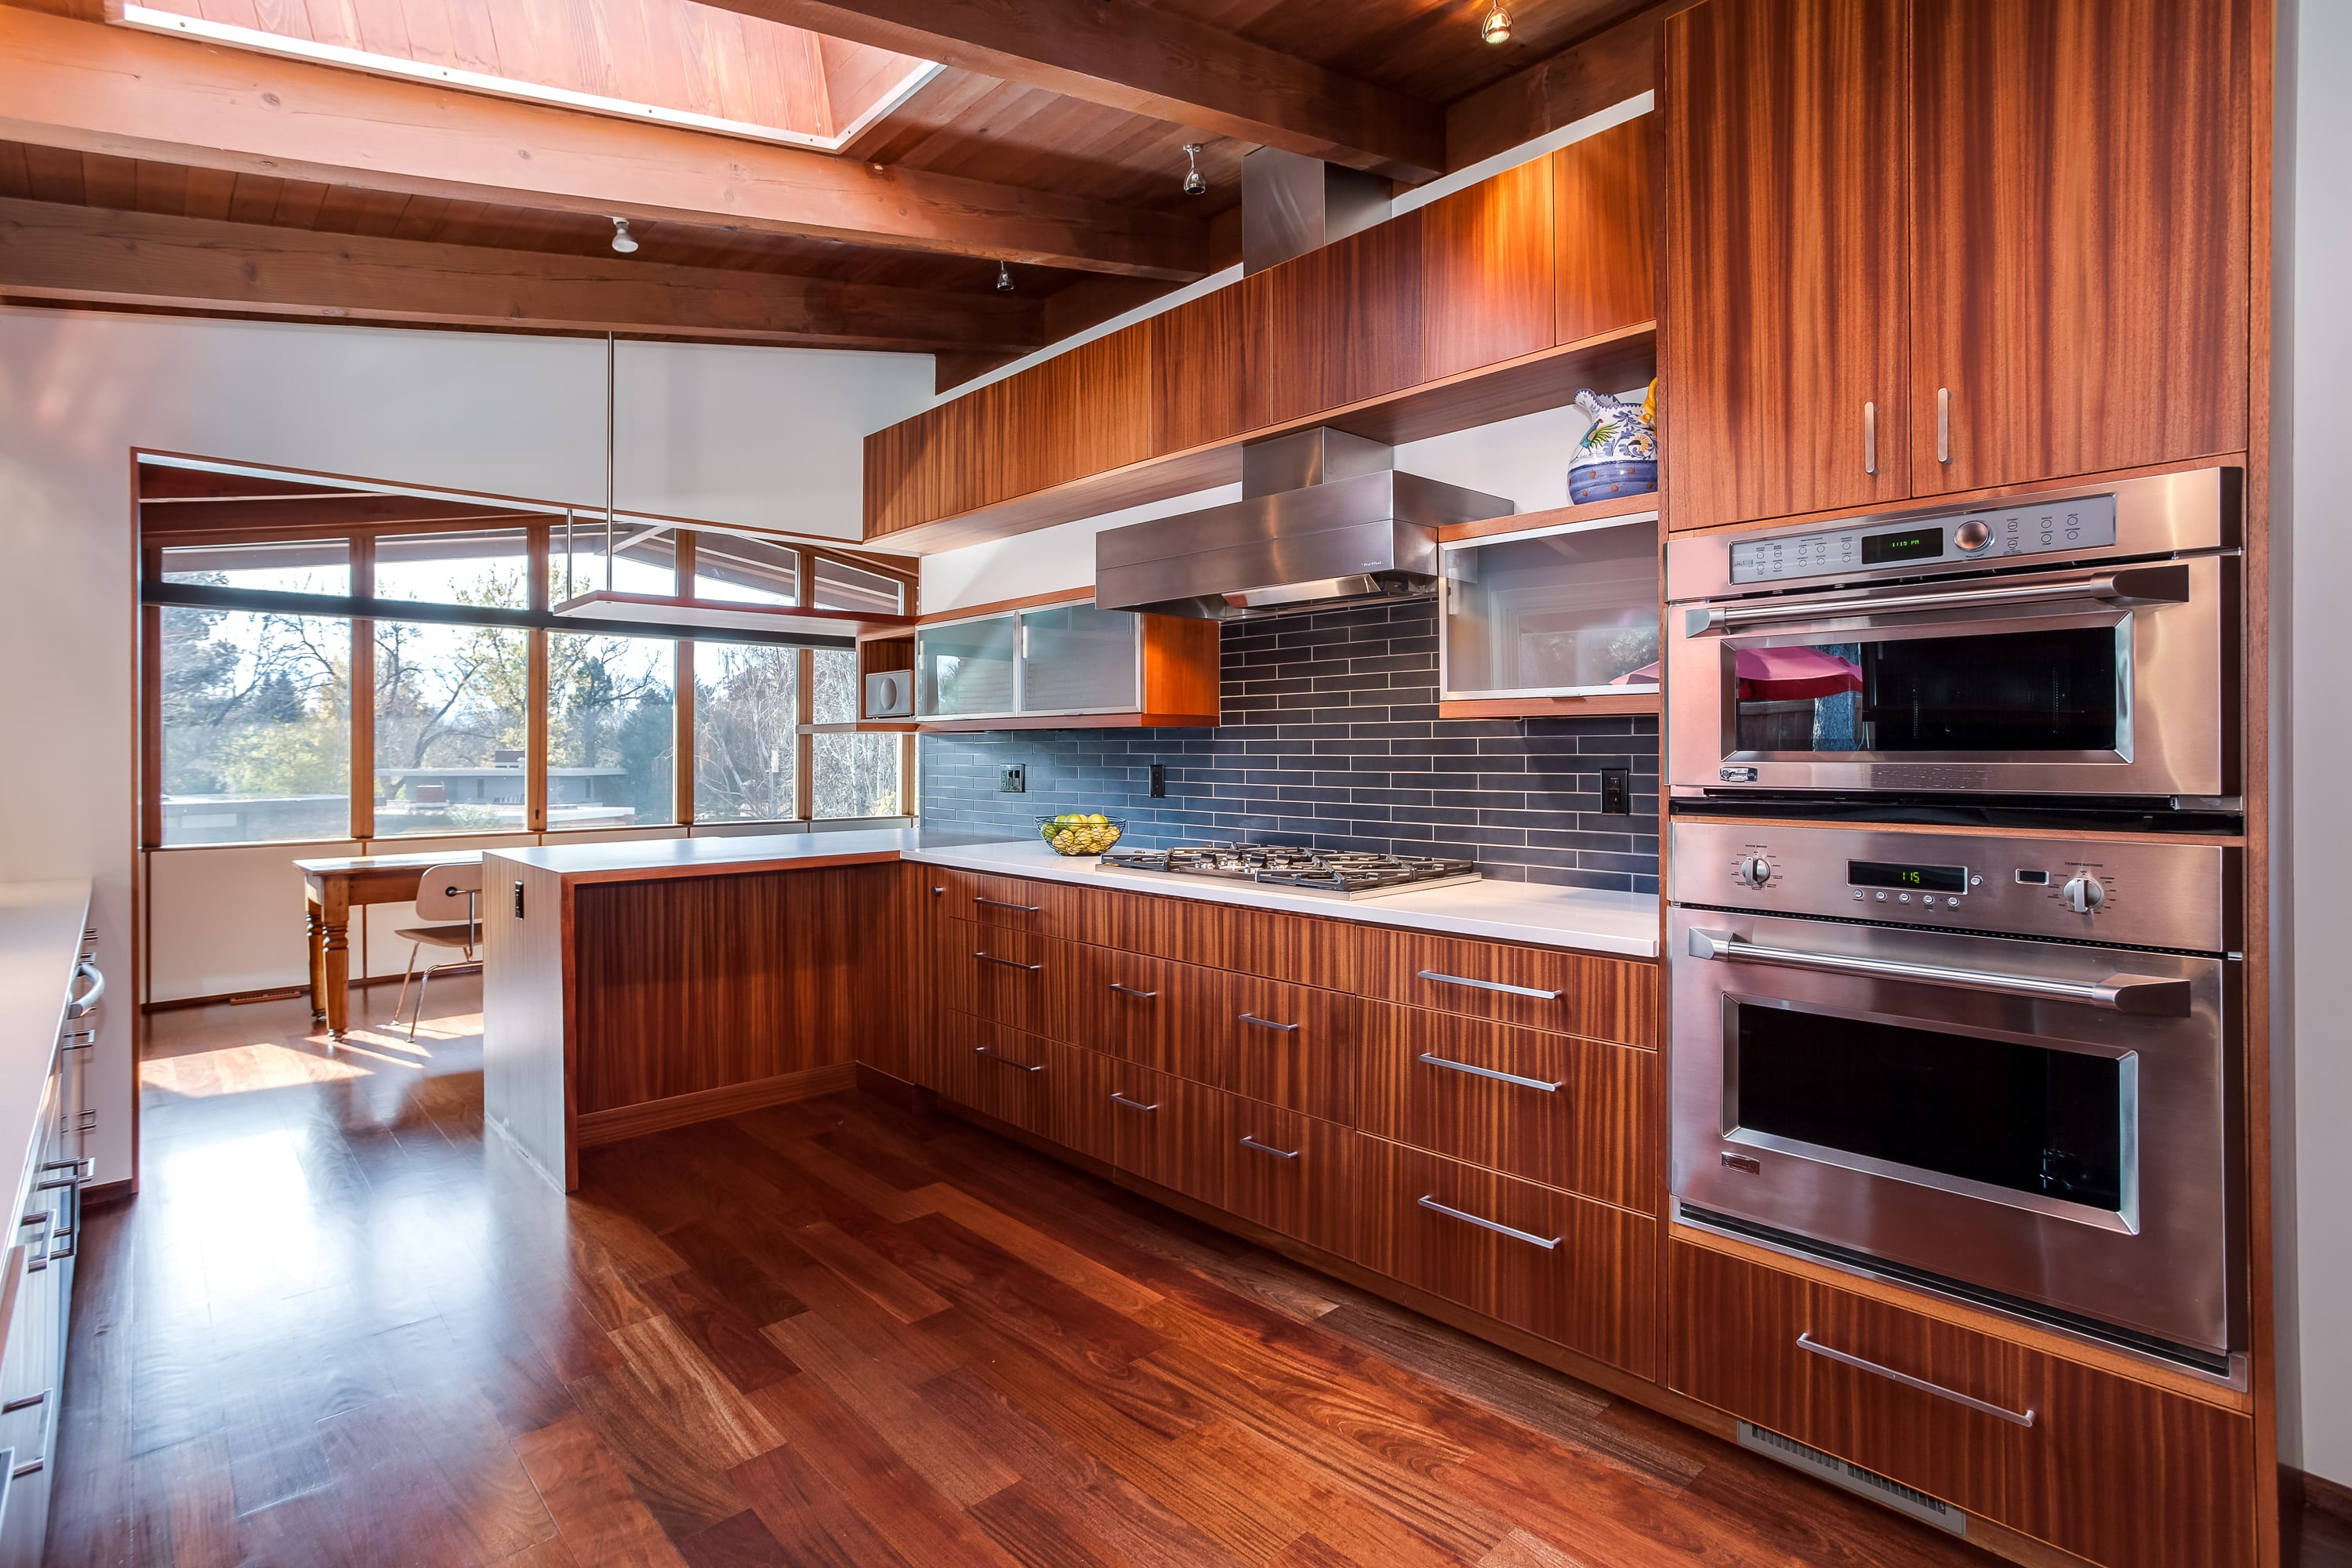 Stainless steel appliances and hood